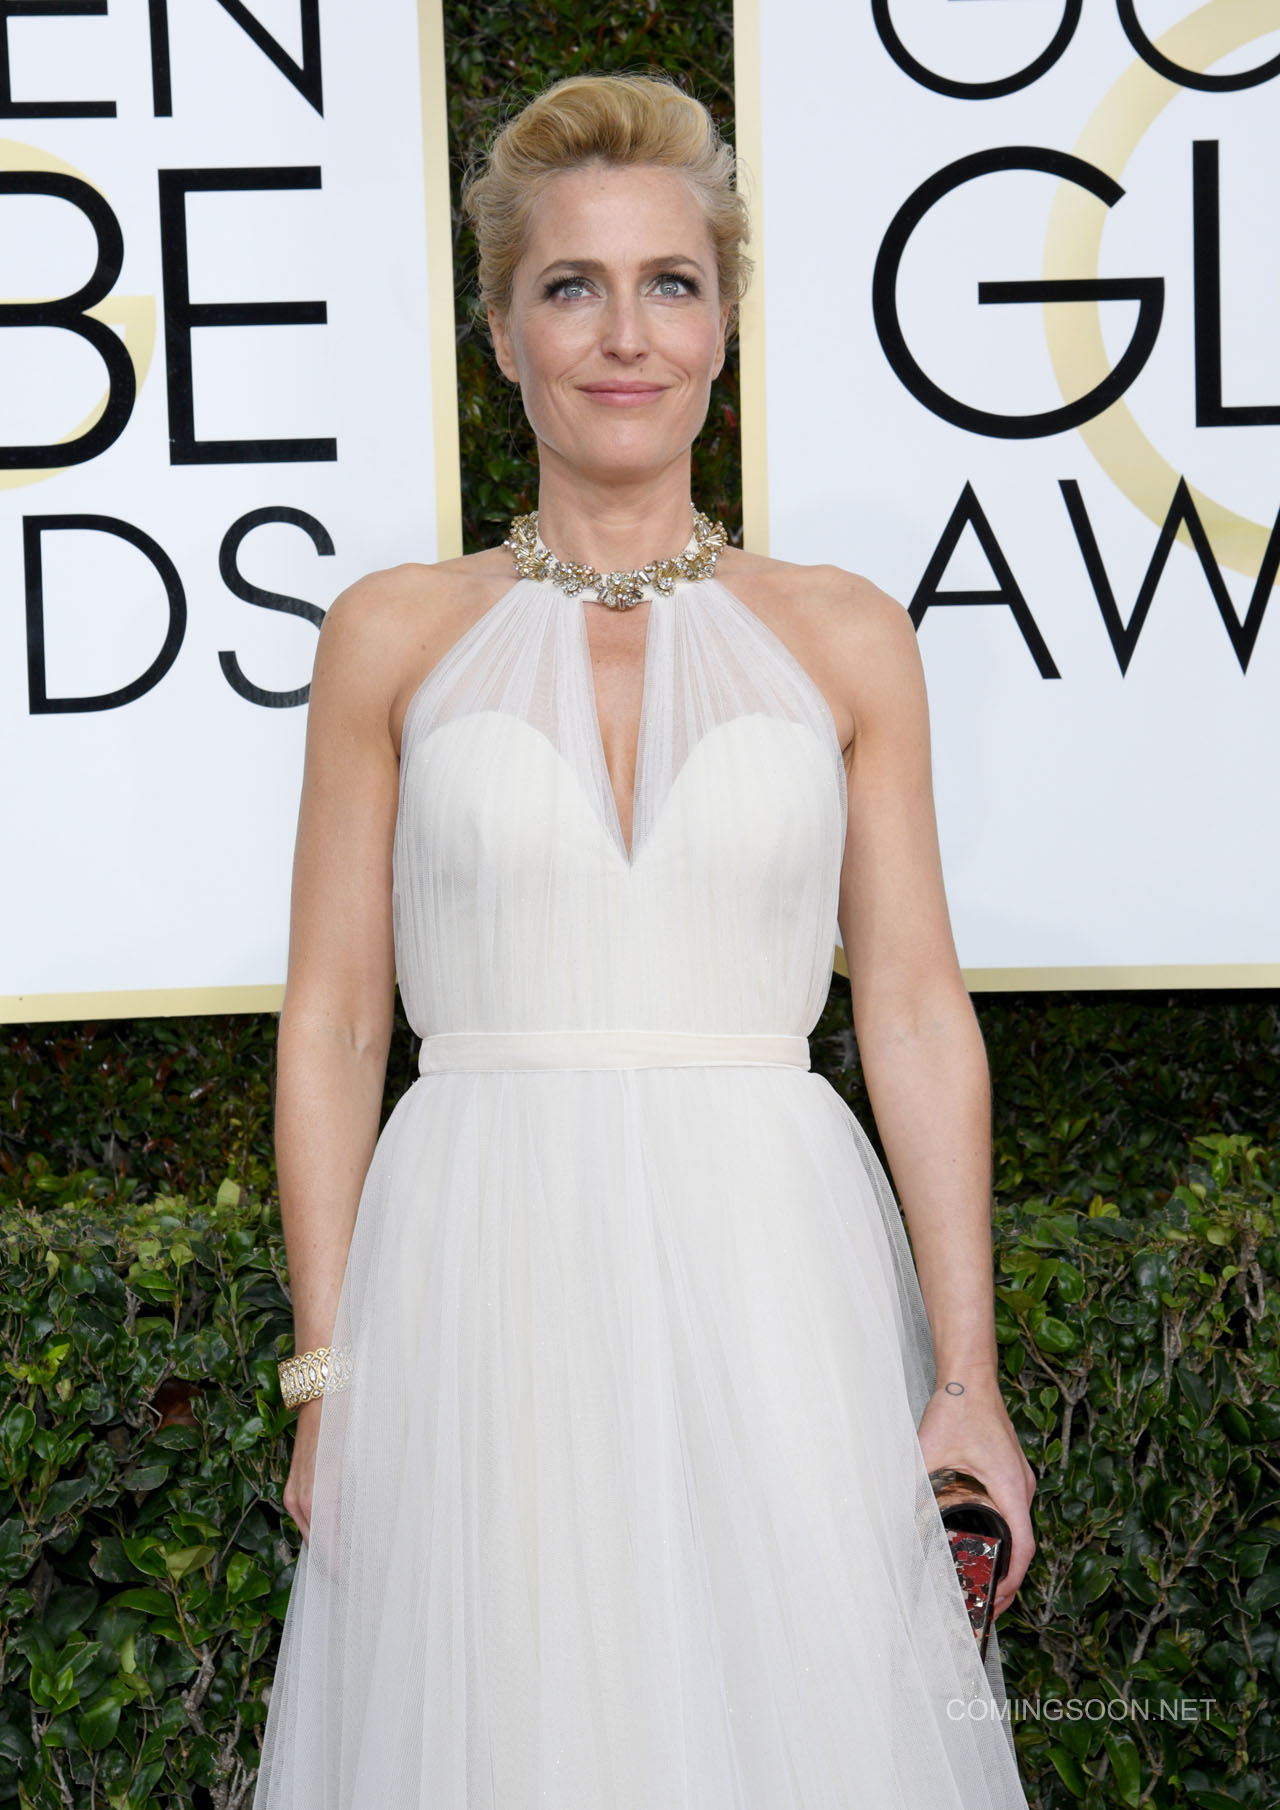 74th golden globes red carpet photos blogs bloglikes - Golden globes red carpet ...